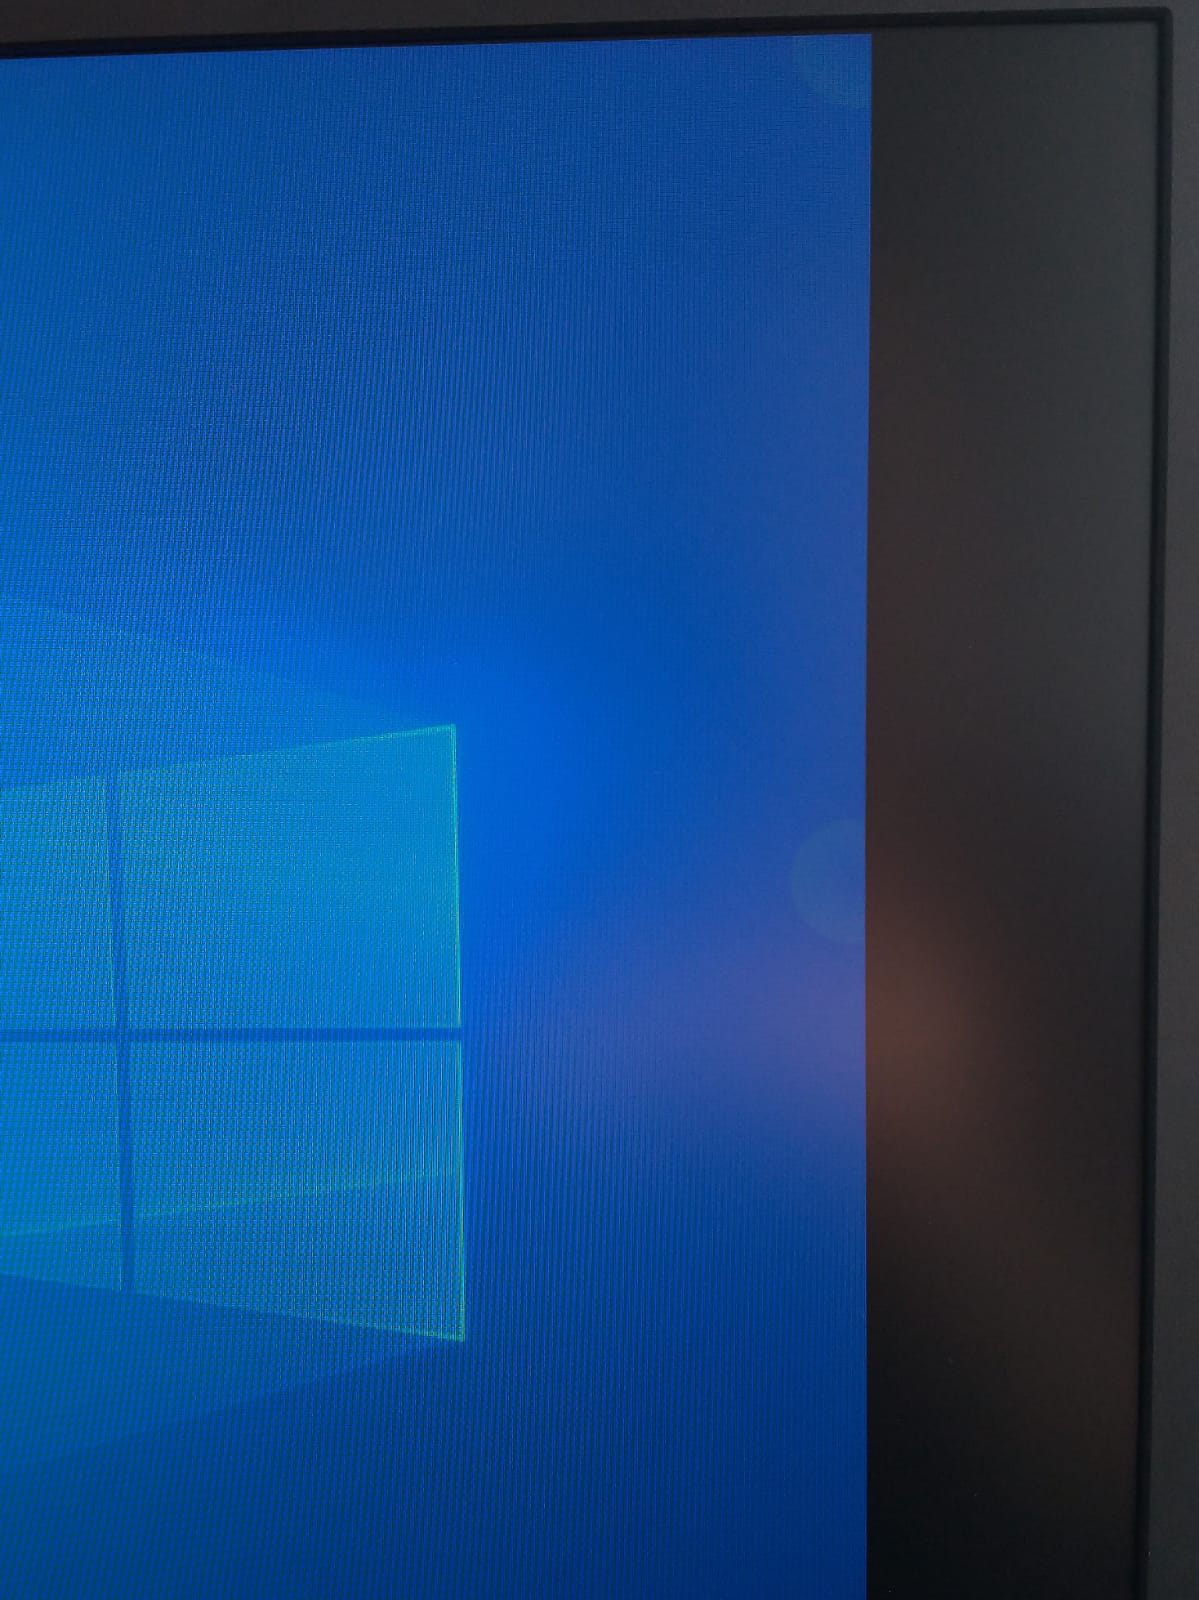 Static phantom / ghost touch / point on Surface pro 4 on display boarder